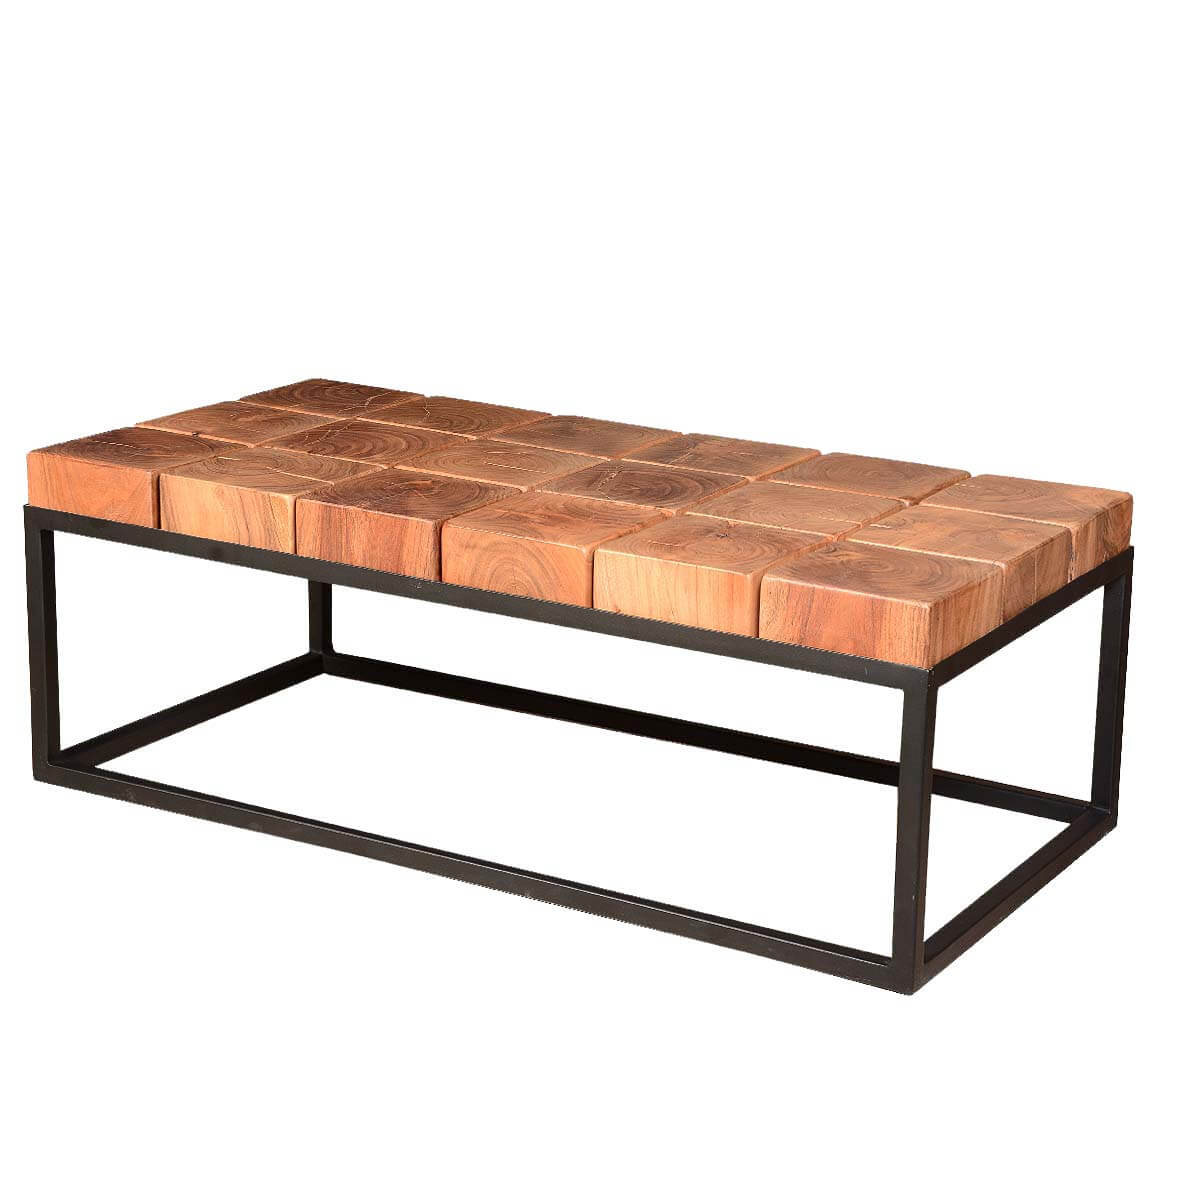 Solid Acacia Wood Block Contemporary Iron Base Rustic Coffee Table